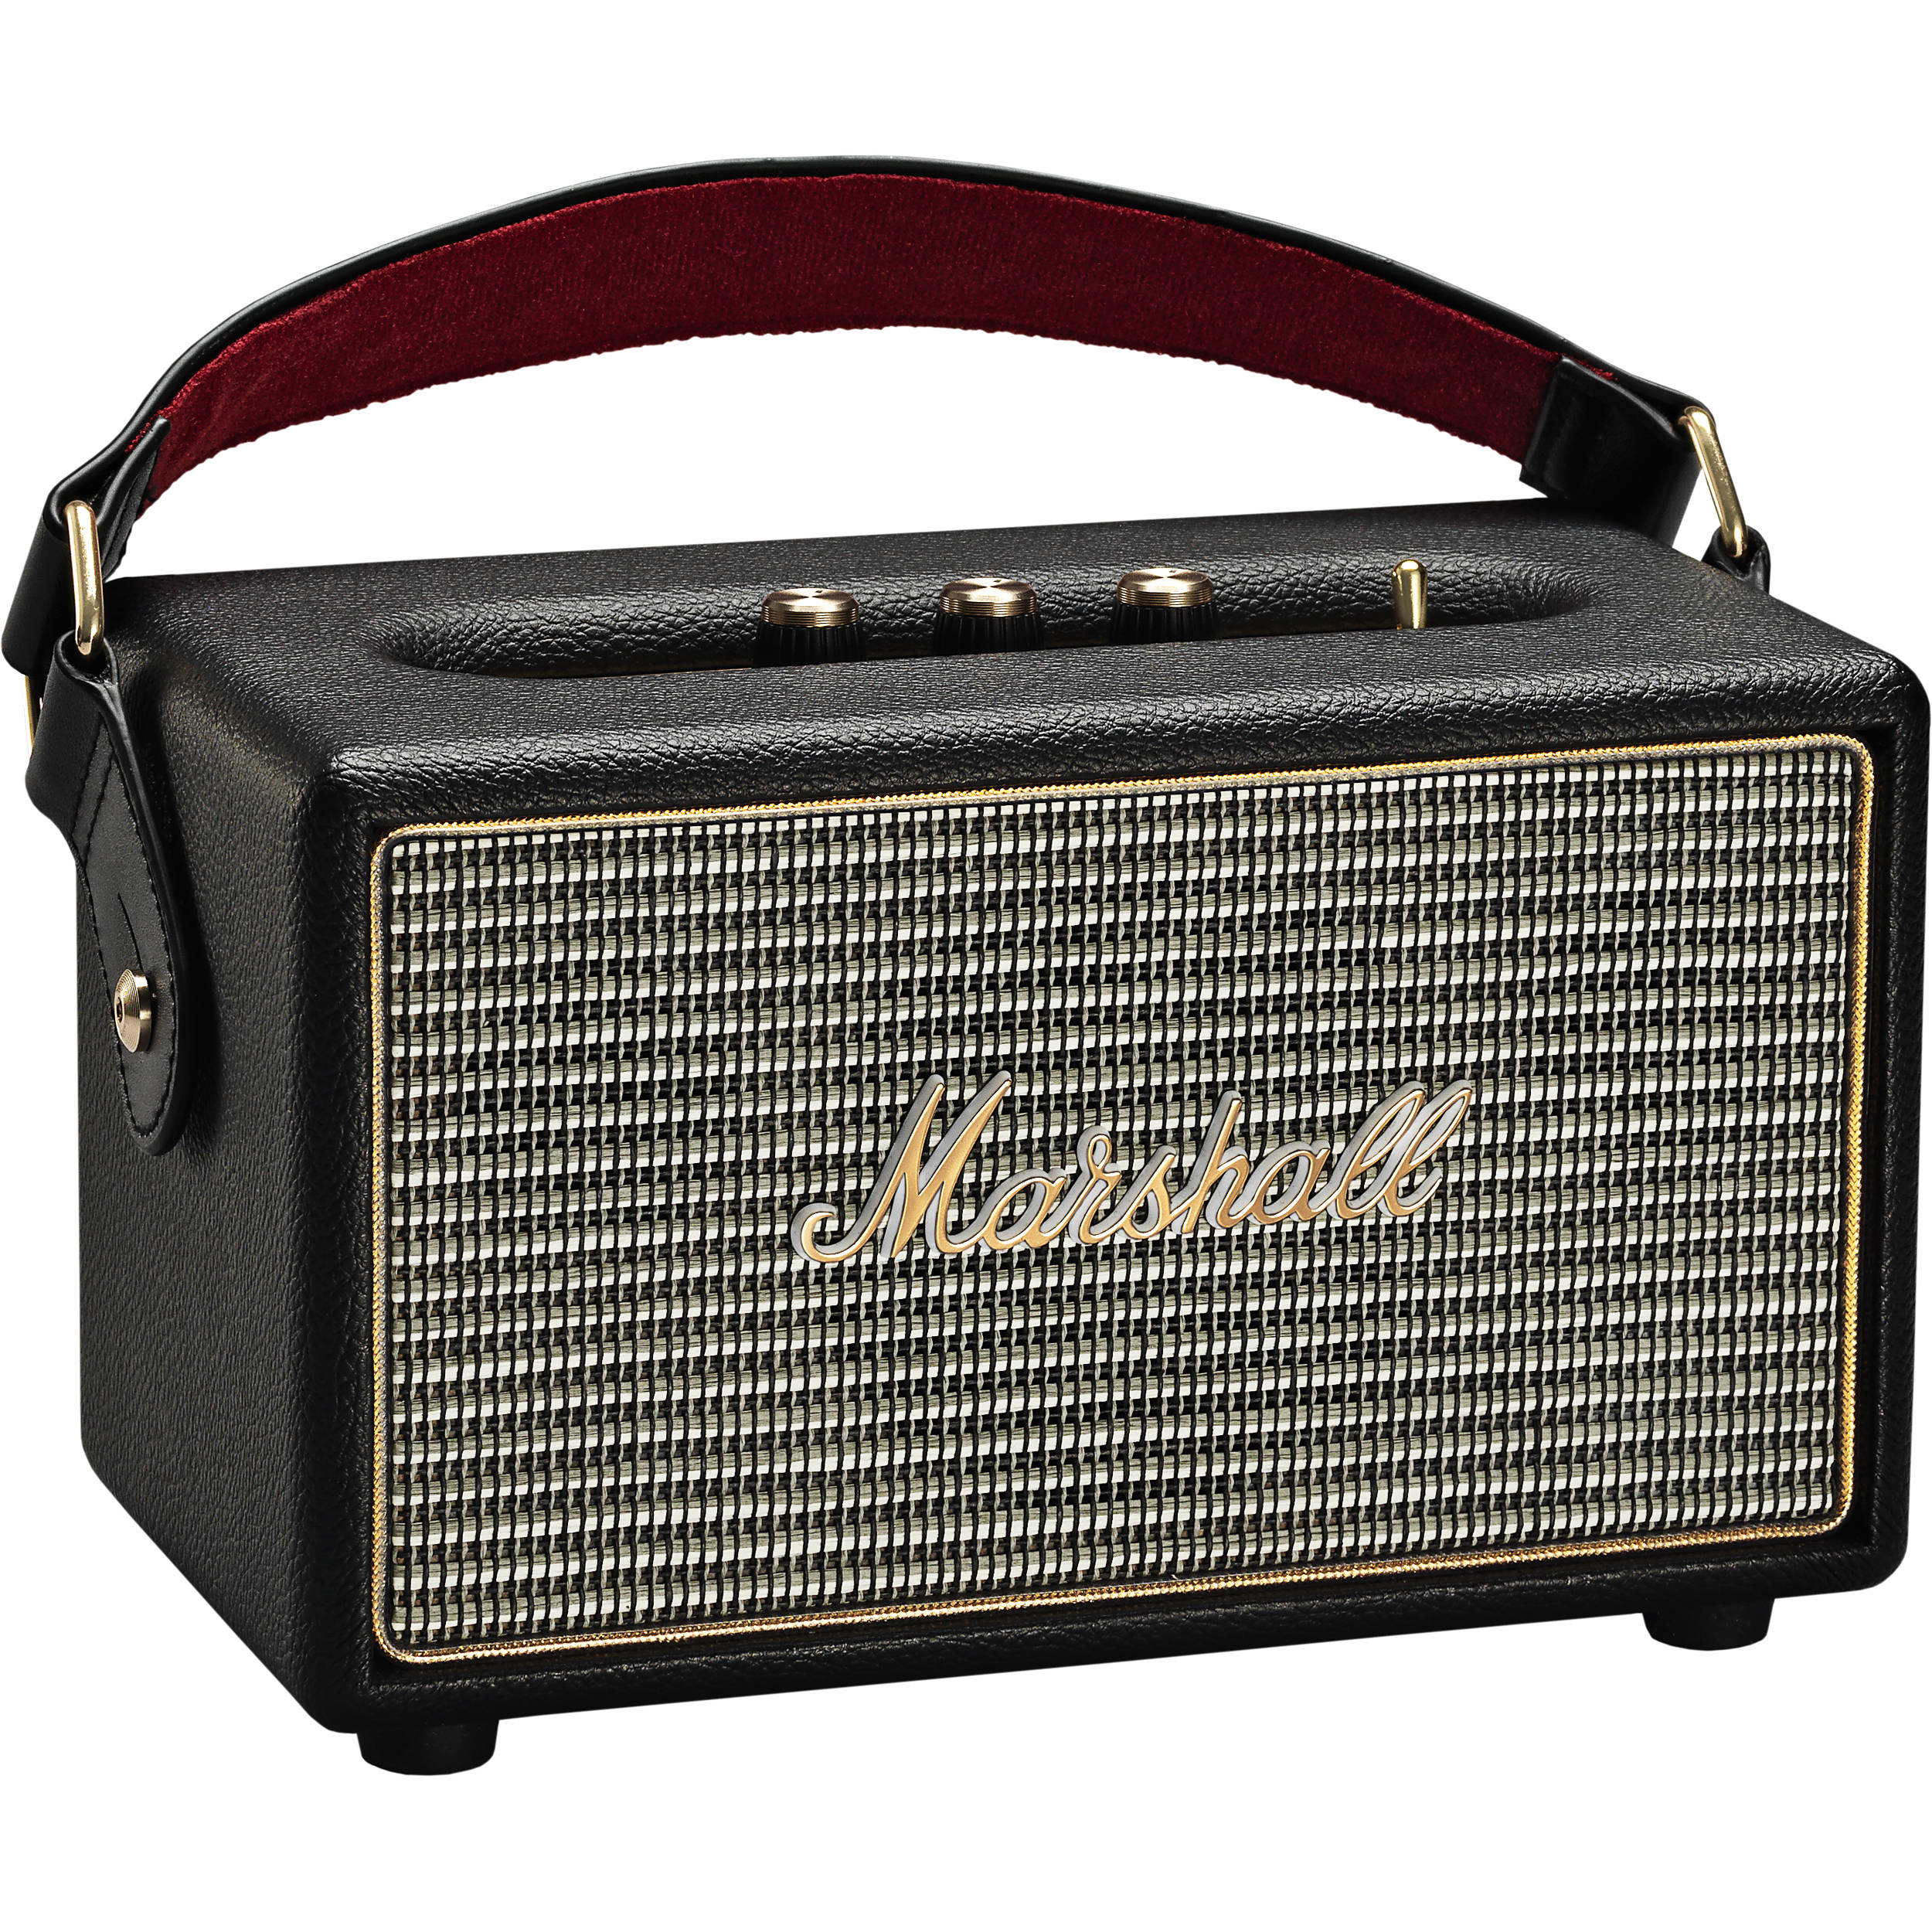 Marshall Audio Kilburn Portable Bluetooth Speaker Black